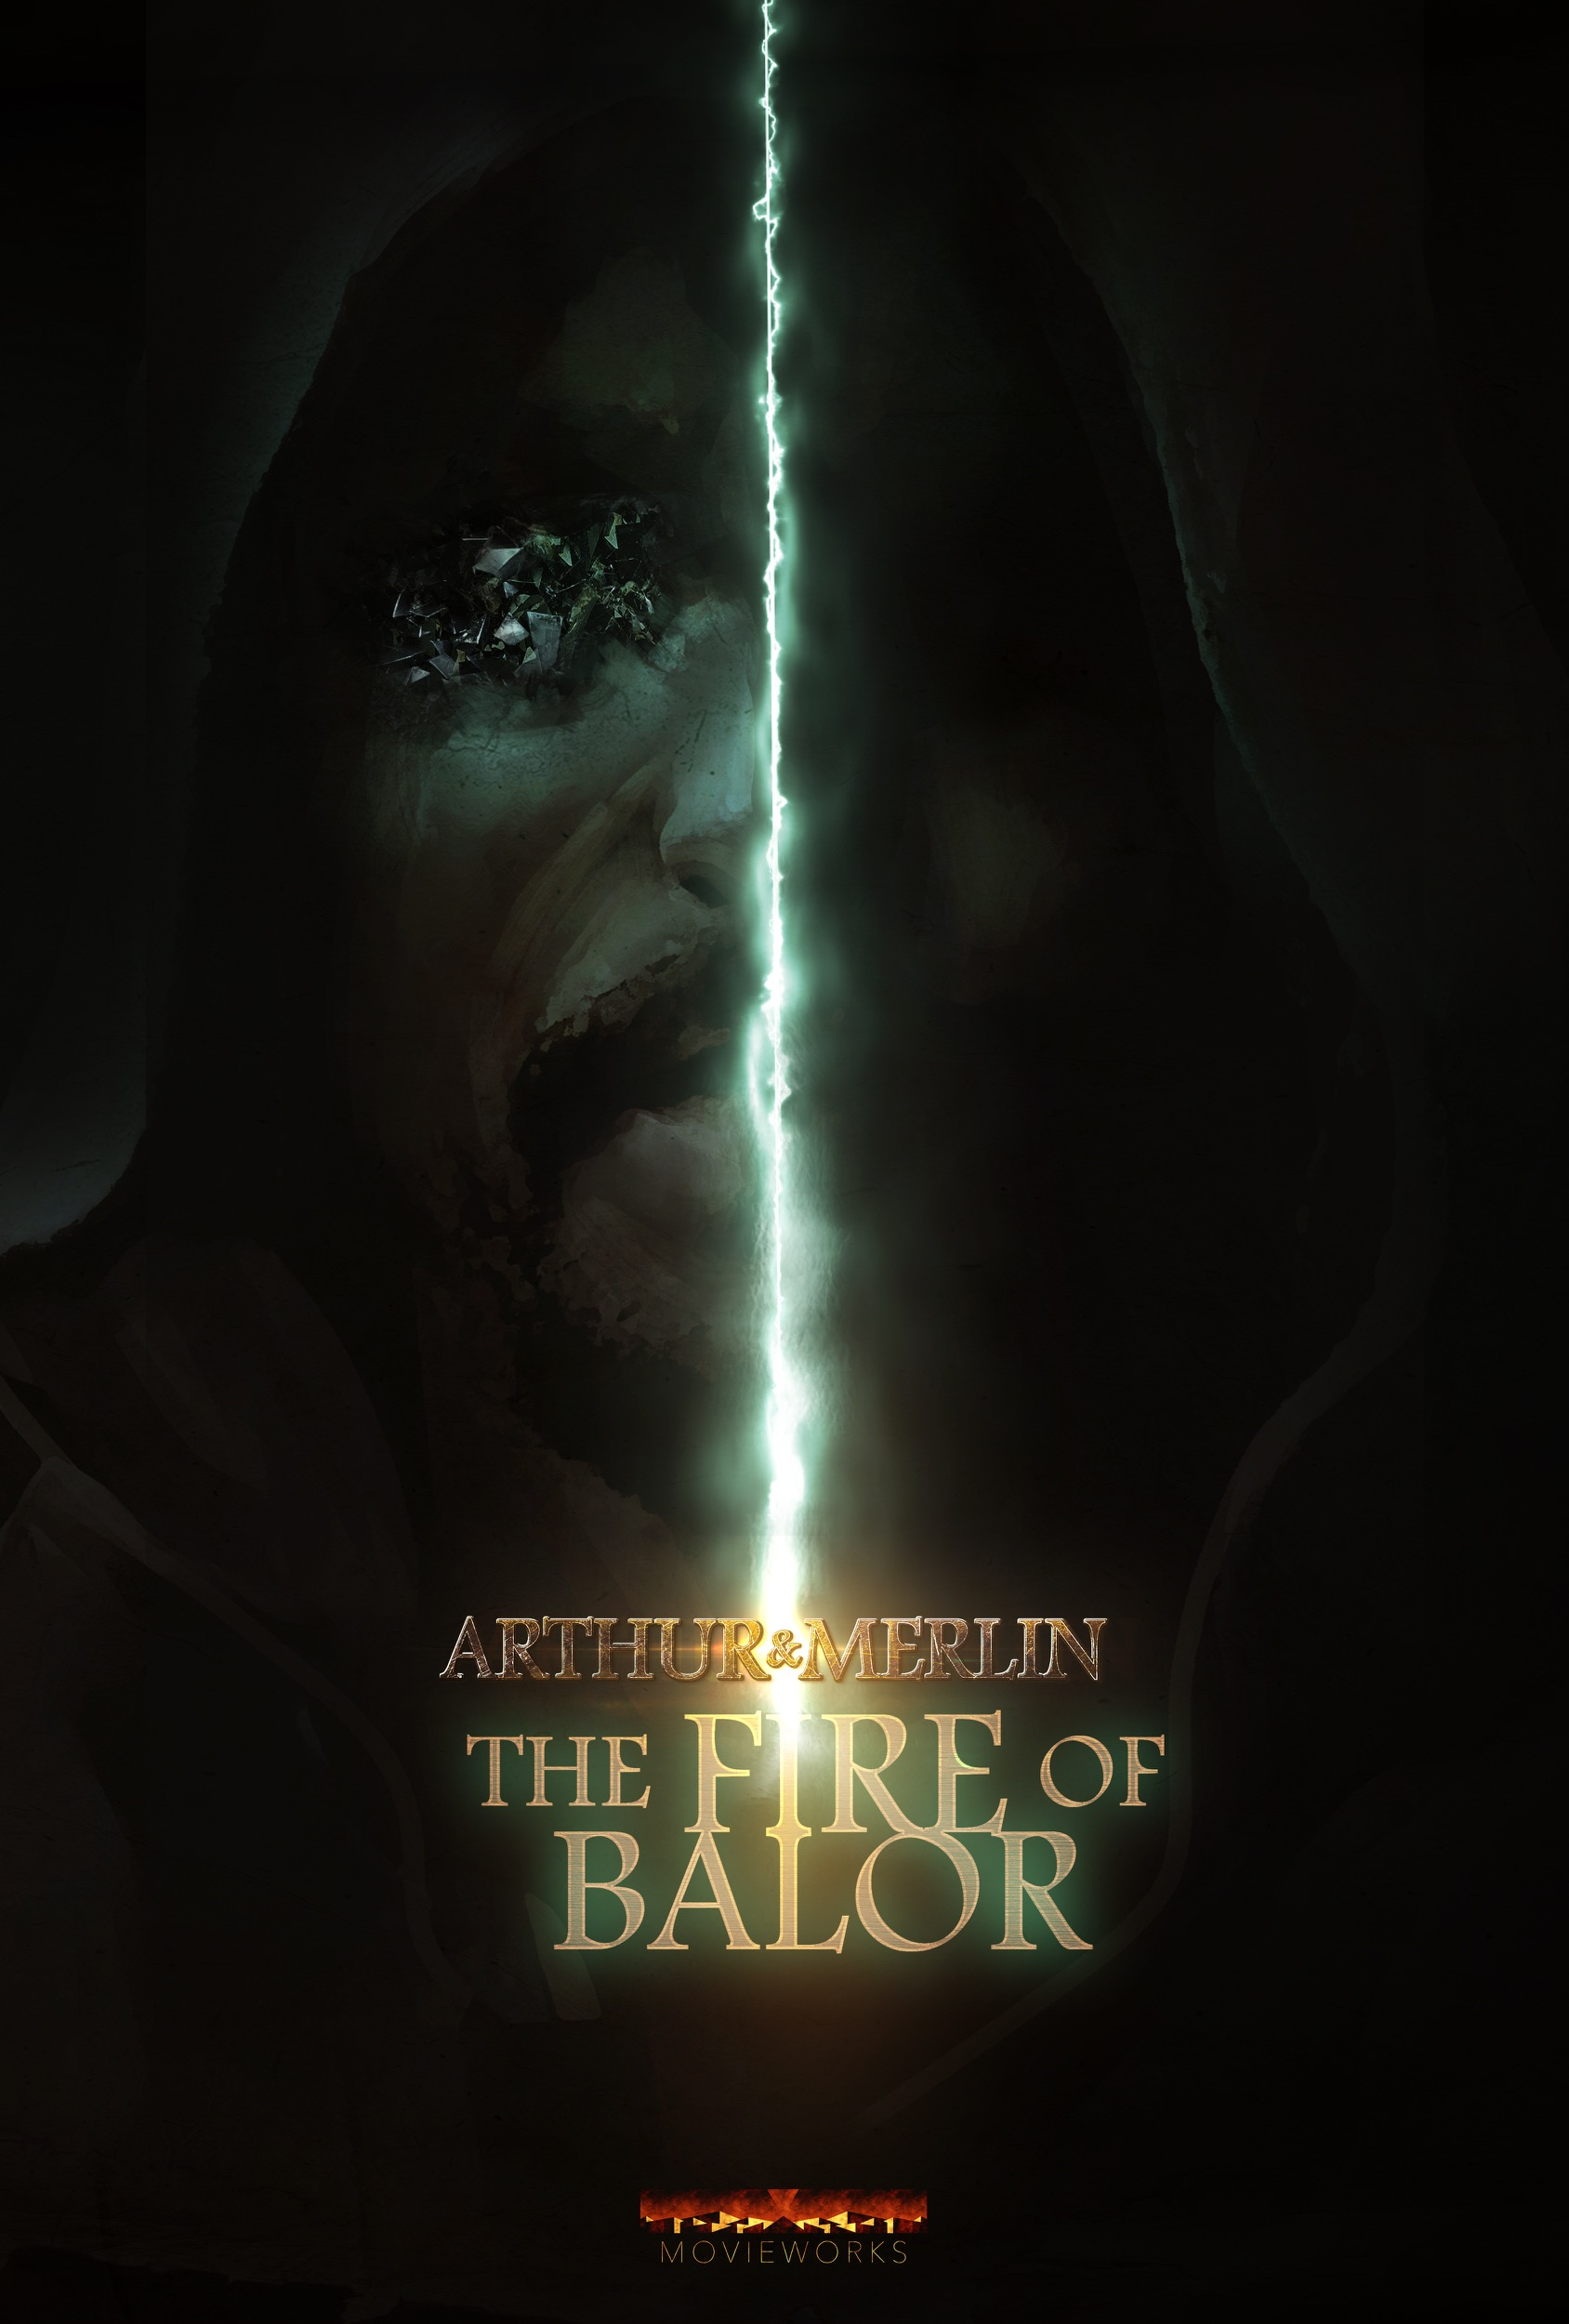 Arthur & Merlin: The Fire of Balor - Carnaby International Sales & Distribution - UK Film